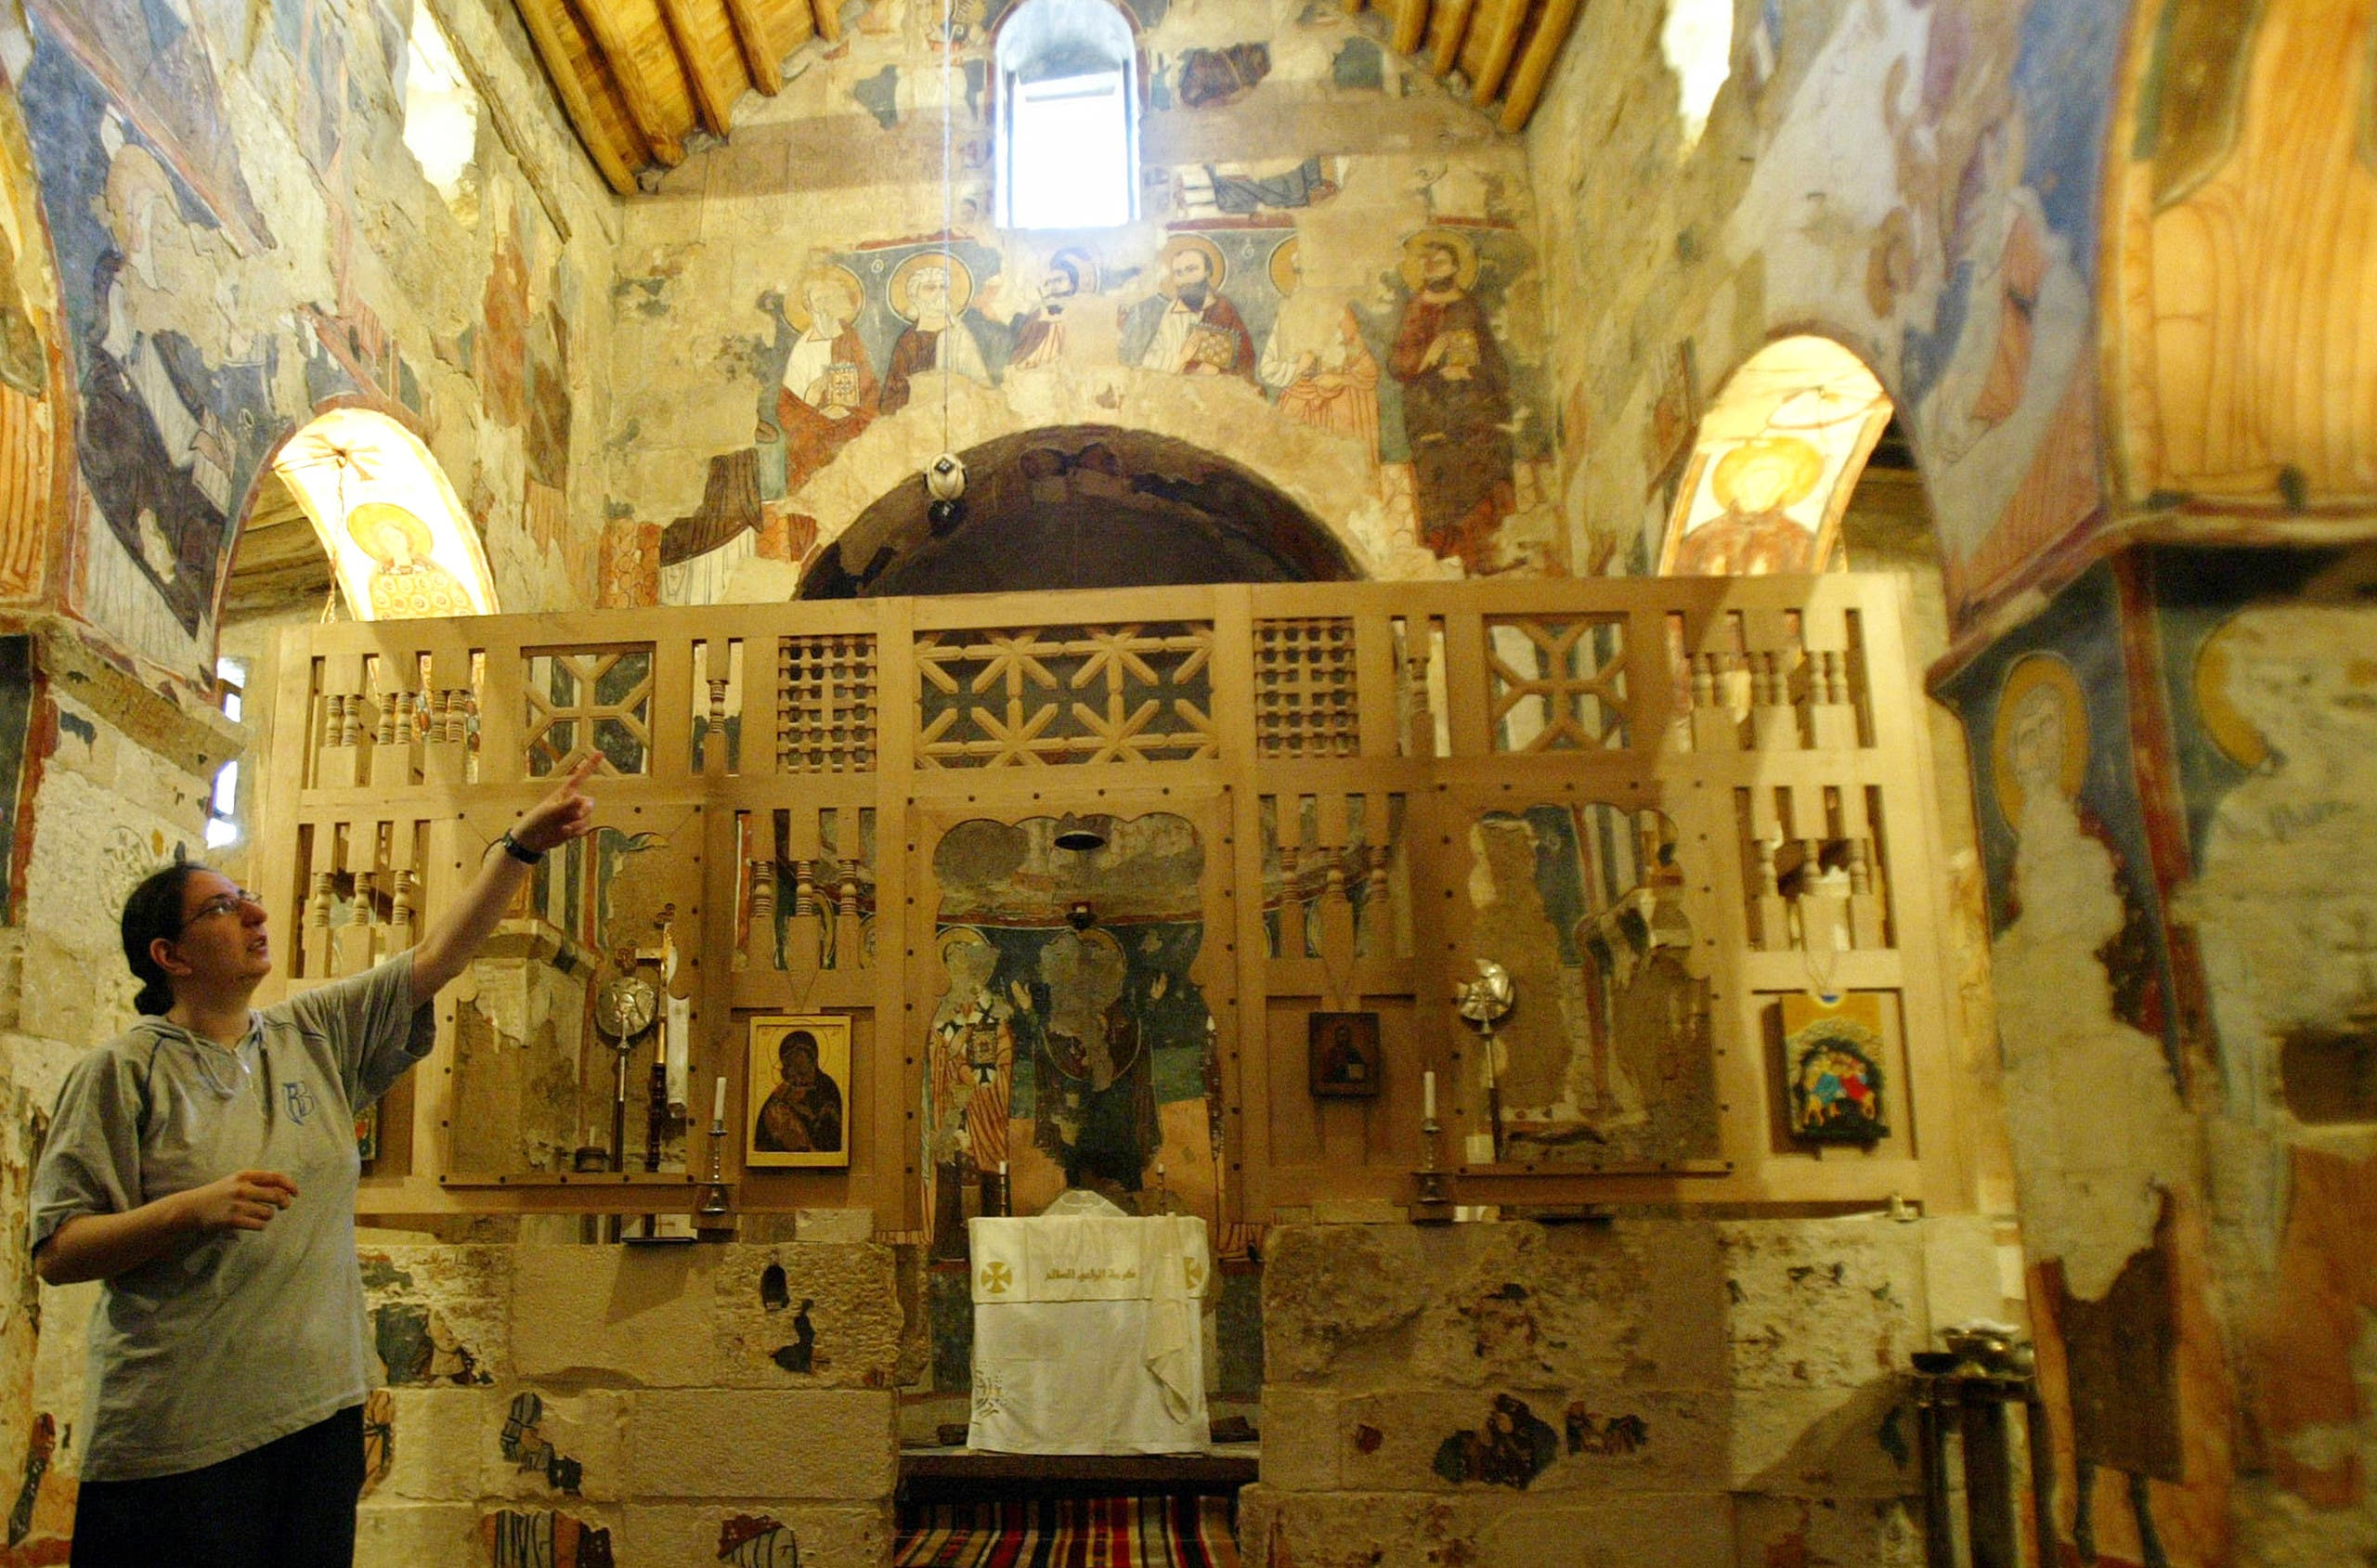 Sister Dima shows icons in the historic church of the Syrian Maronite monastery of Deir Mar Musa on July 11, 2007. (AFP)